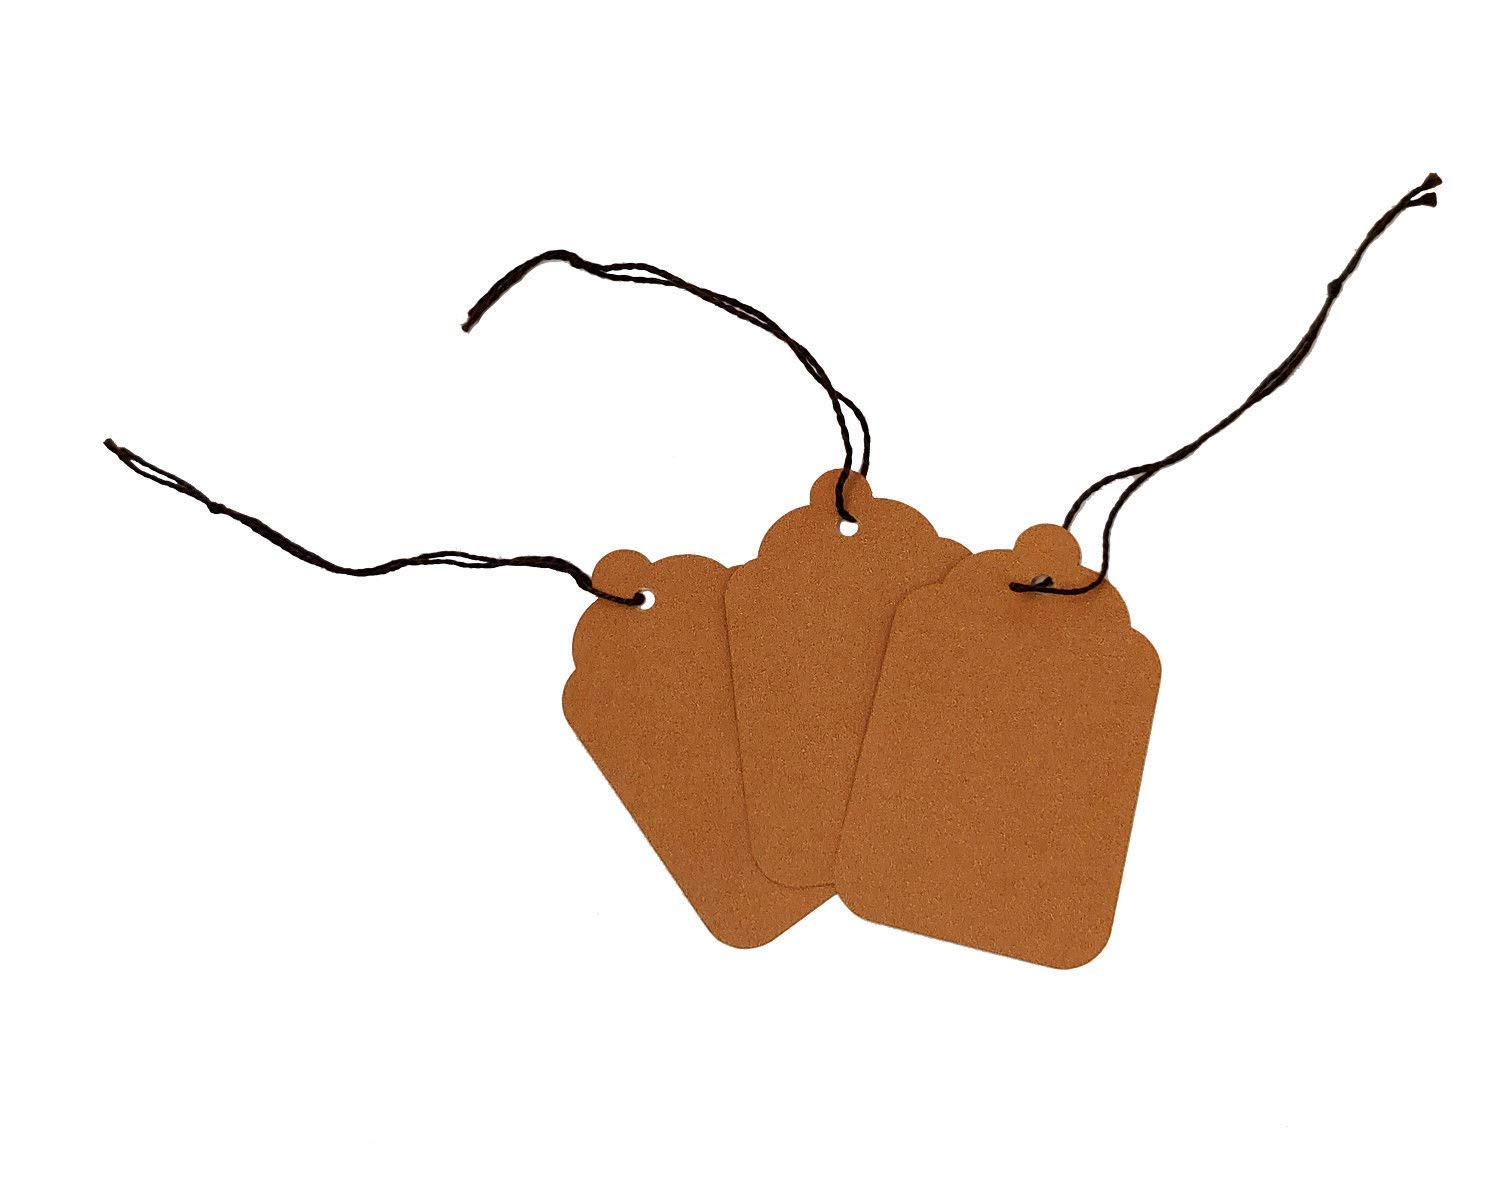 Blank Kraft Strung Merchandise Pricing Tags with String, Brown #8 Tags, 1.75'' W x 2.875'' H, 200 Pack